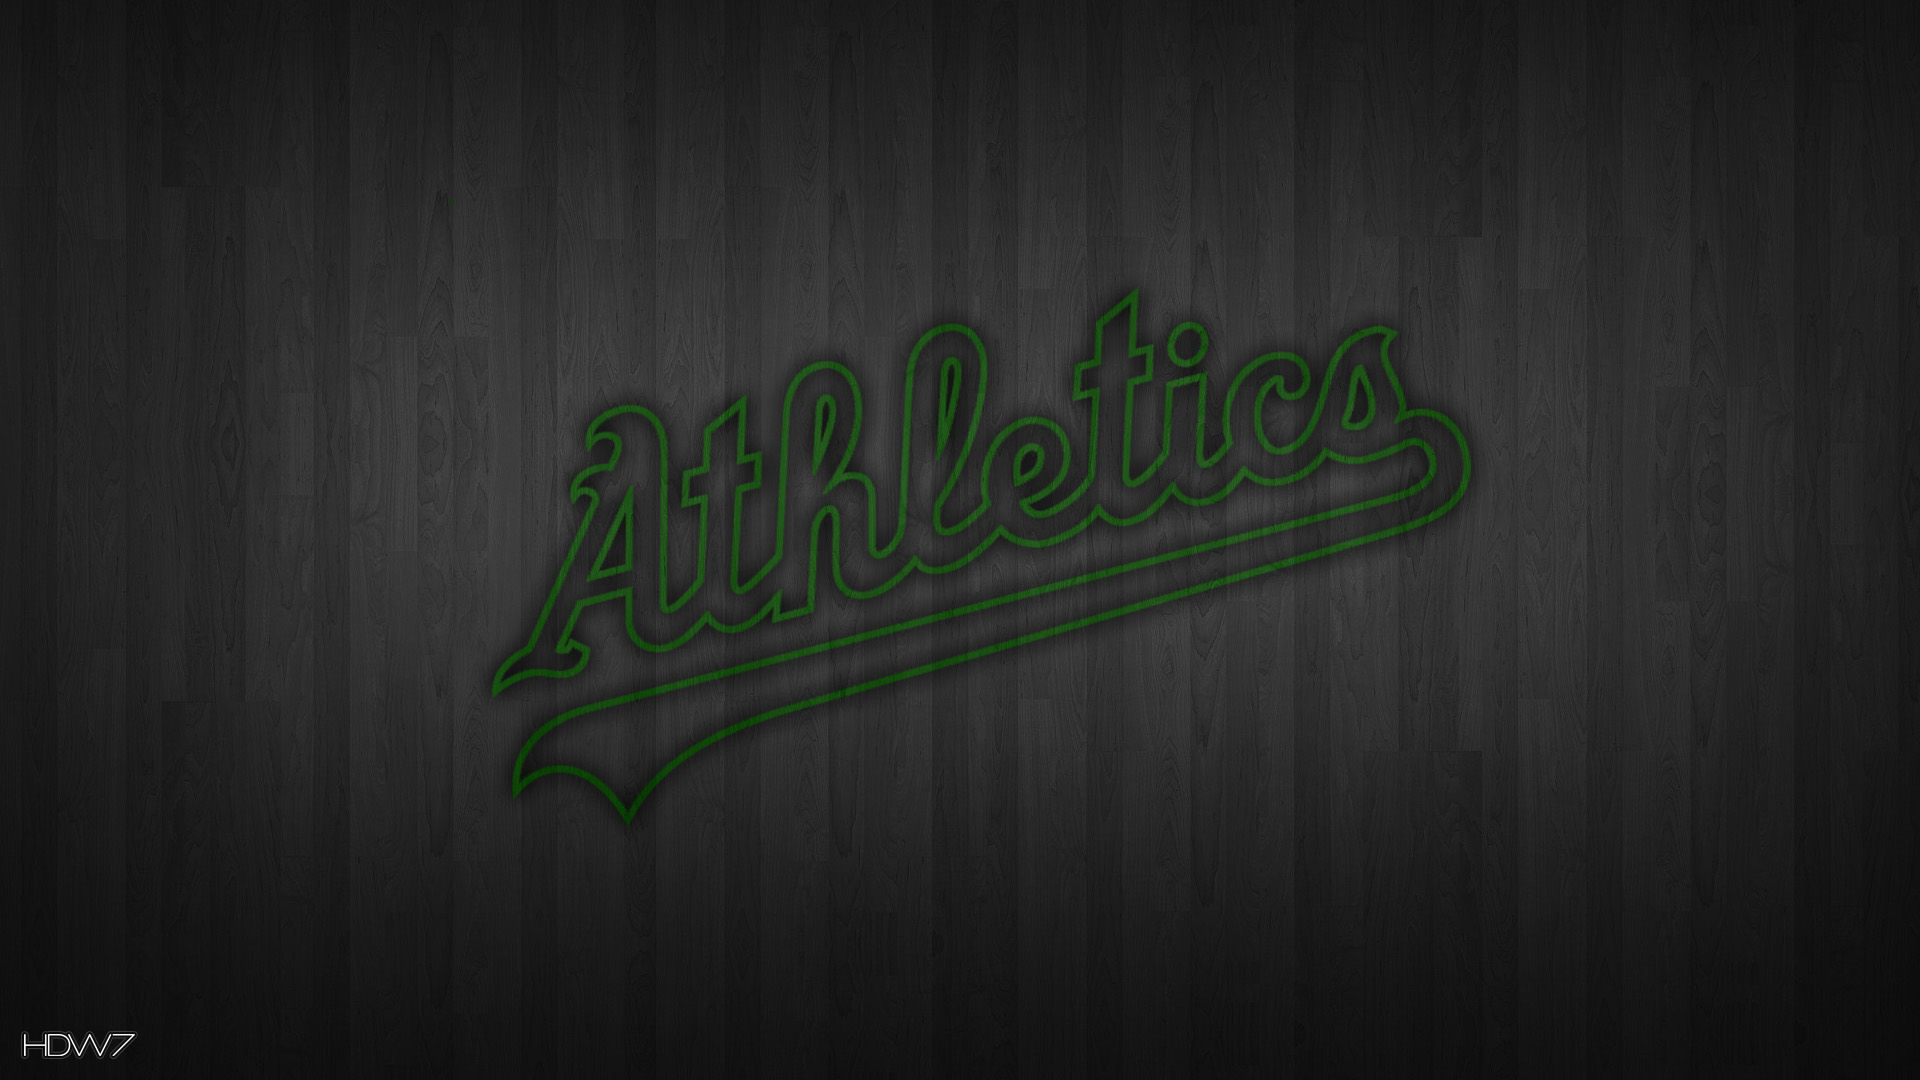 oakland athletics wallpaper HD wallpaper gallery 134 1920x1080